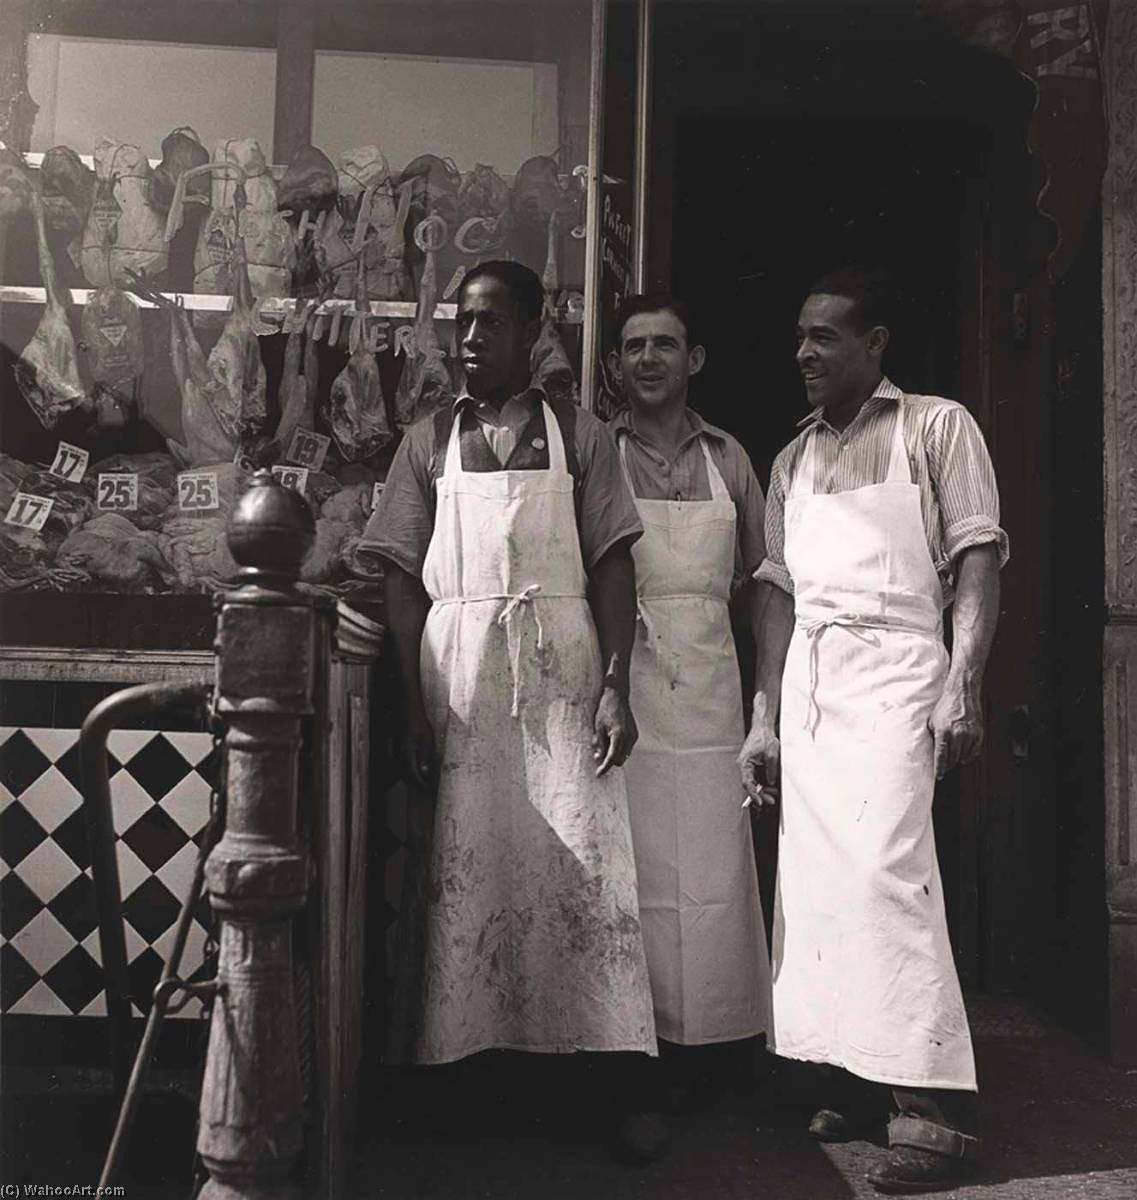 Meatmarket Owner and Butchers, from the project The Most Crowded Block, Print by Aaron Siskind (1903-1991, United States)